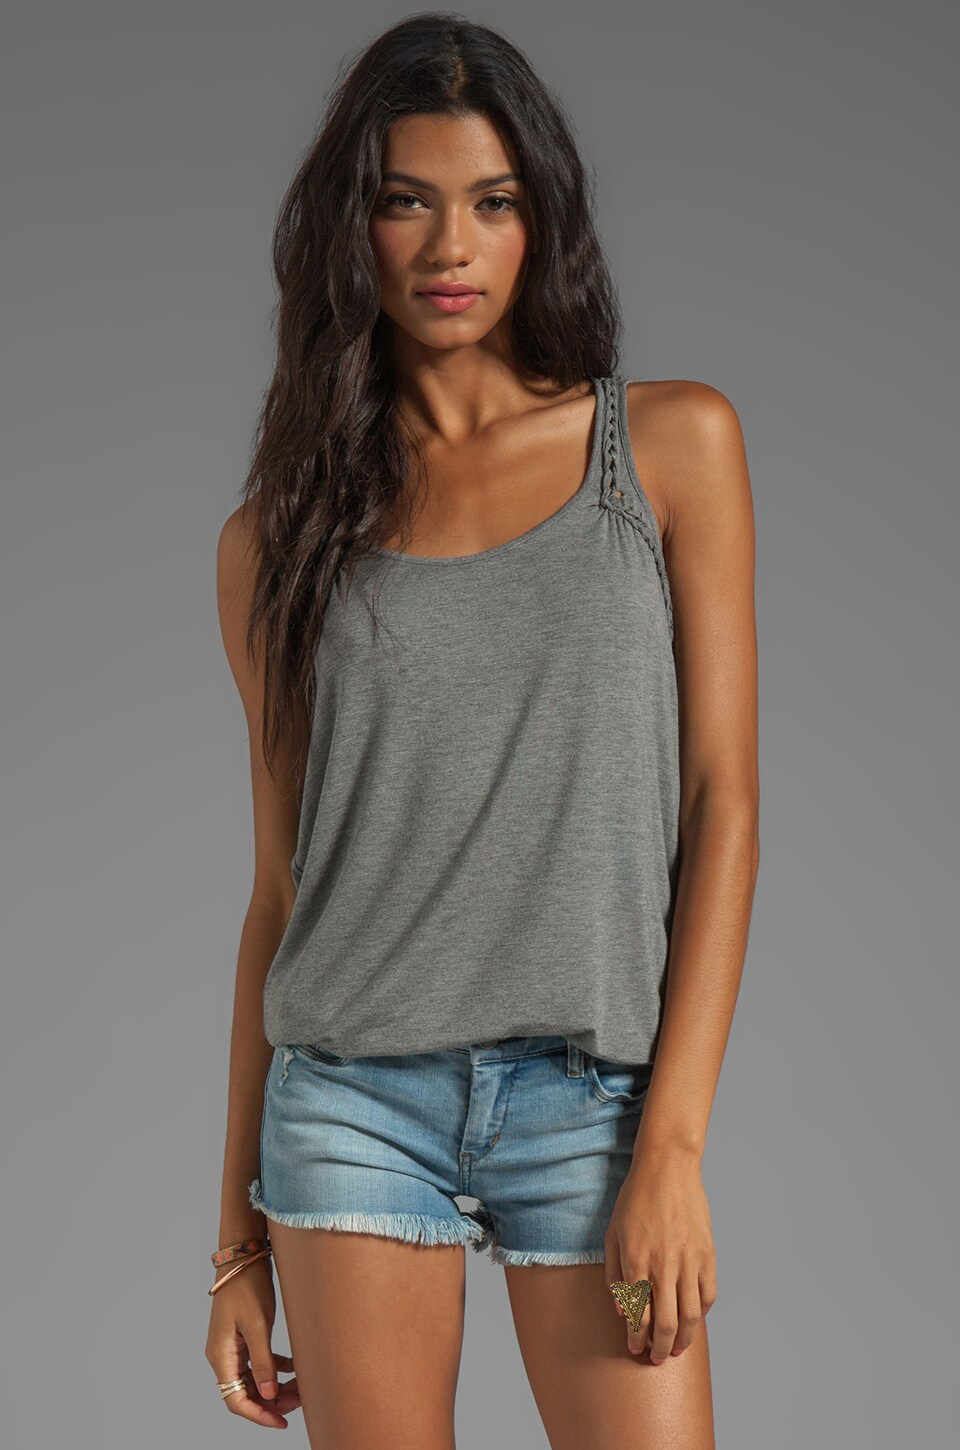 C&C California Stretch Rayon Jersey with Roping Tank in Slate Heather Grey